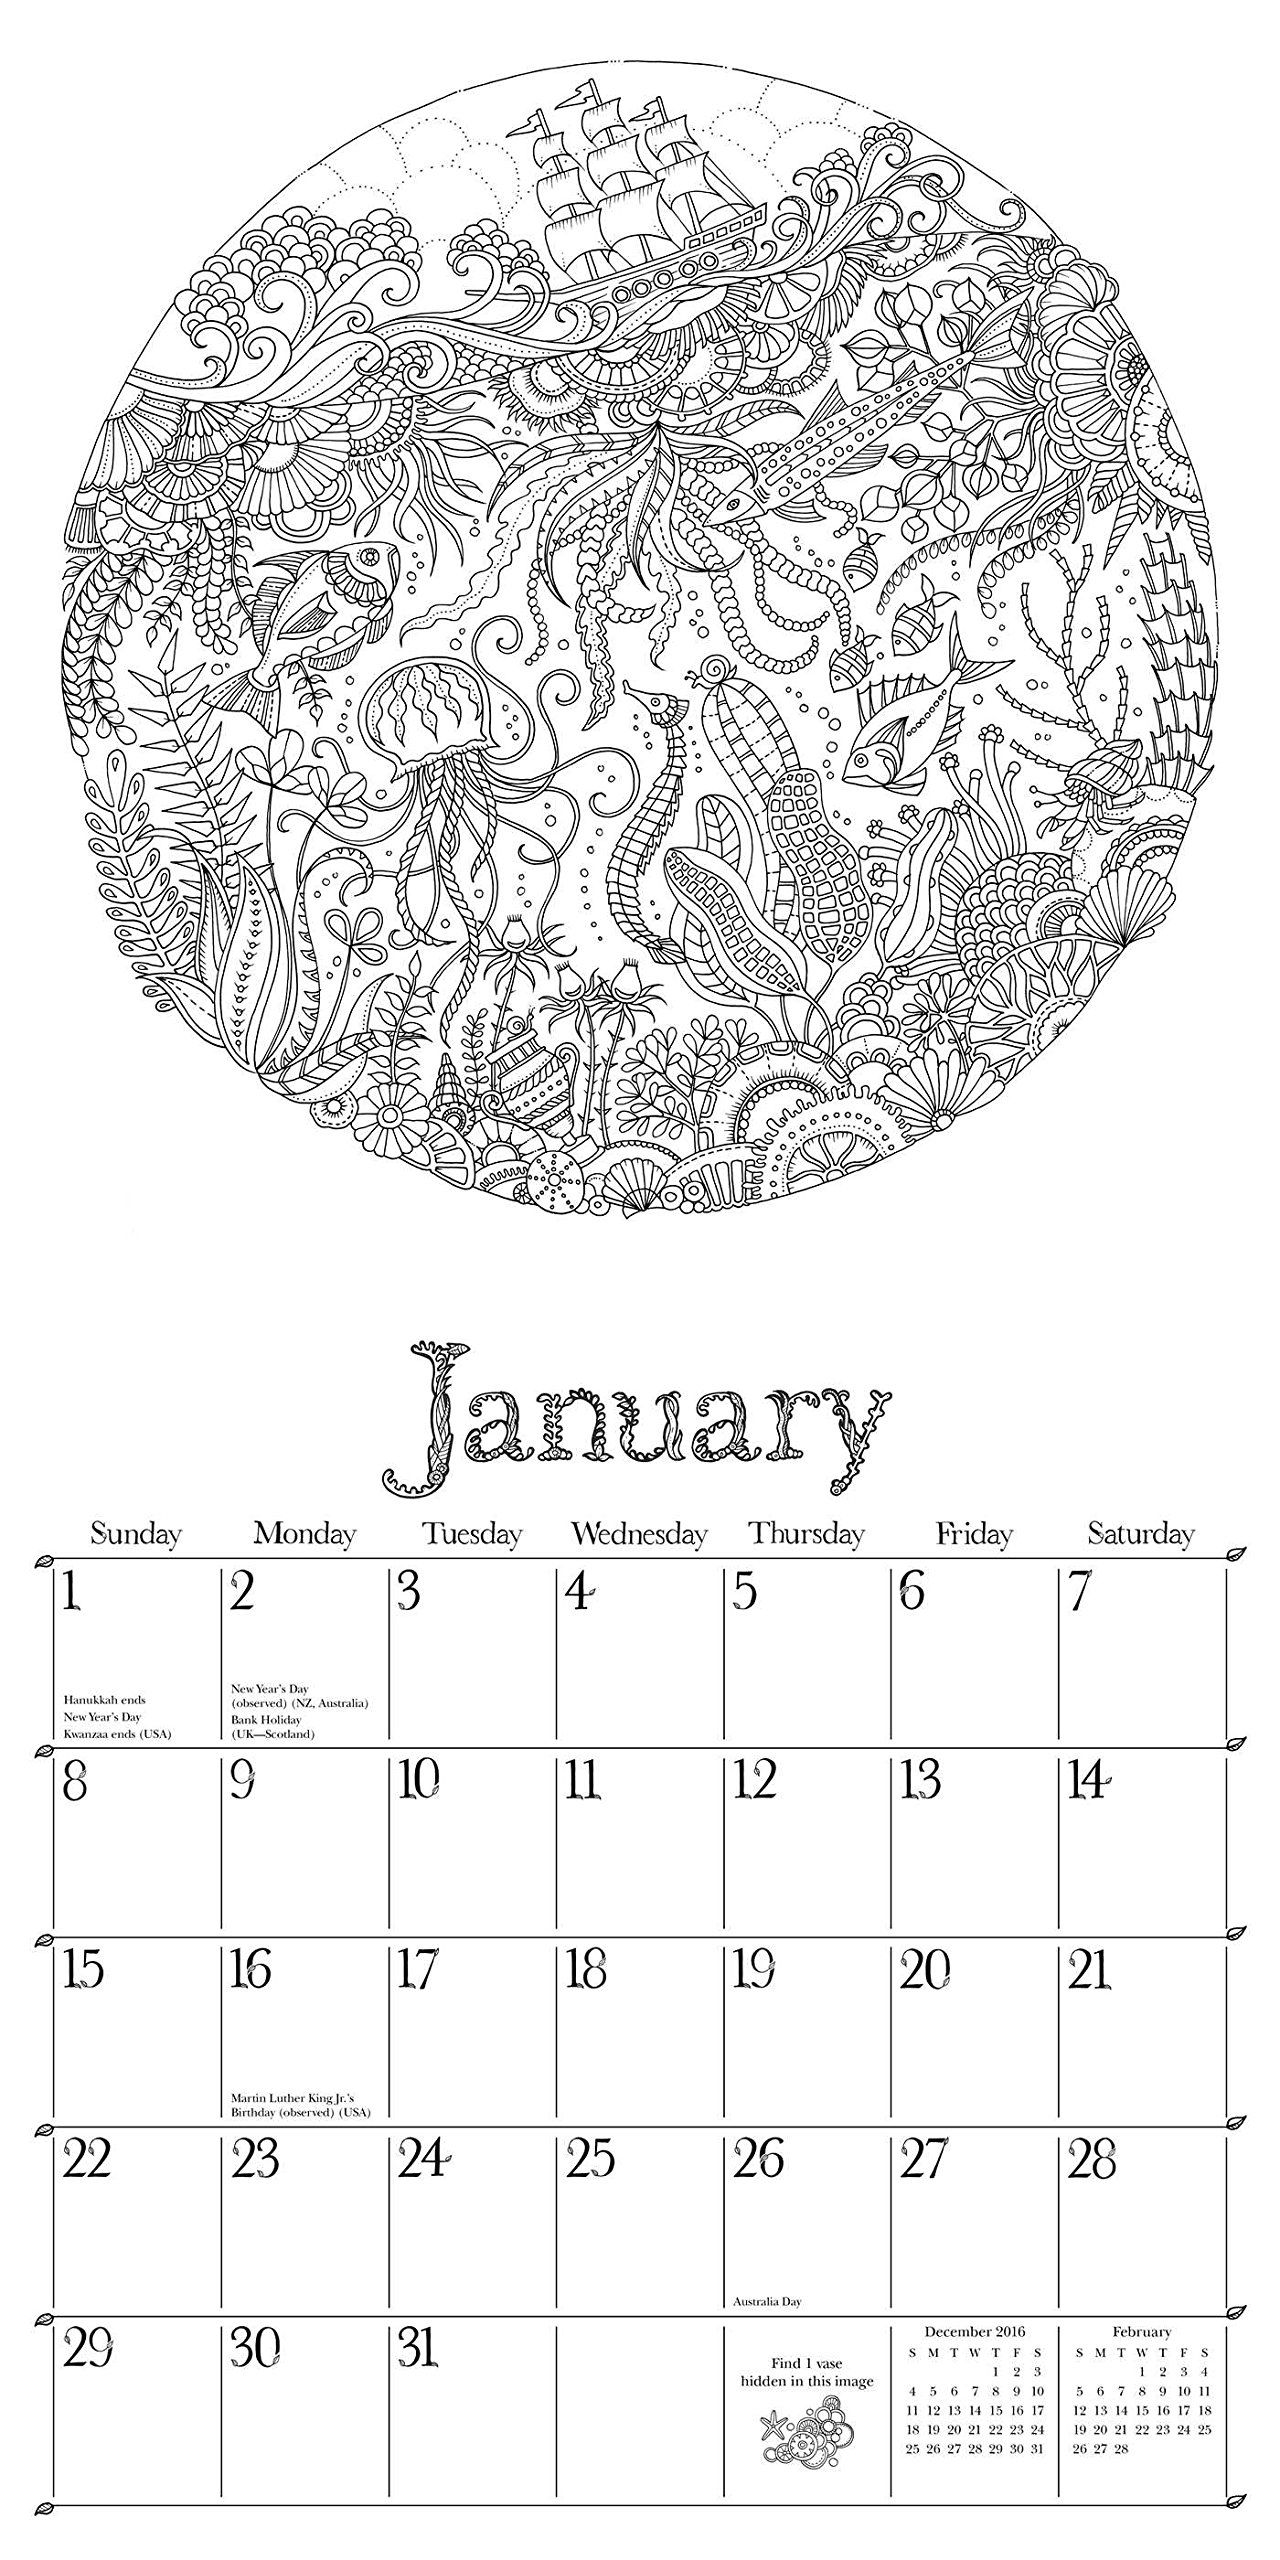 Lost Ocean 2017 Wall Calendar: An Inky Adventure and 2017 Coloring ...